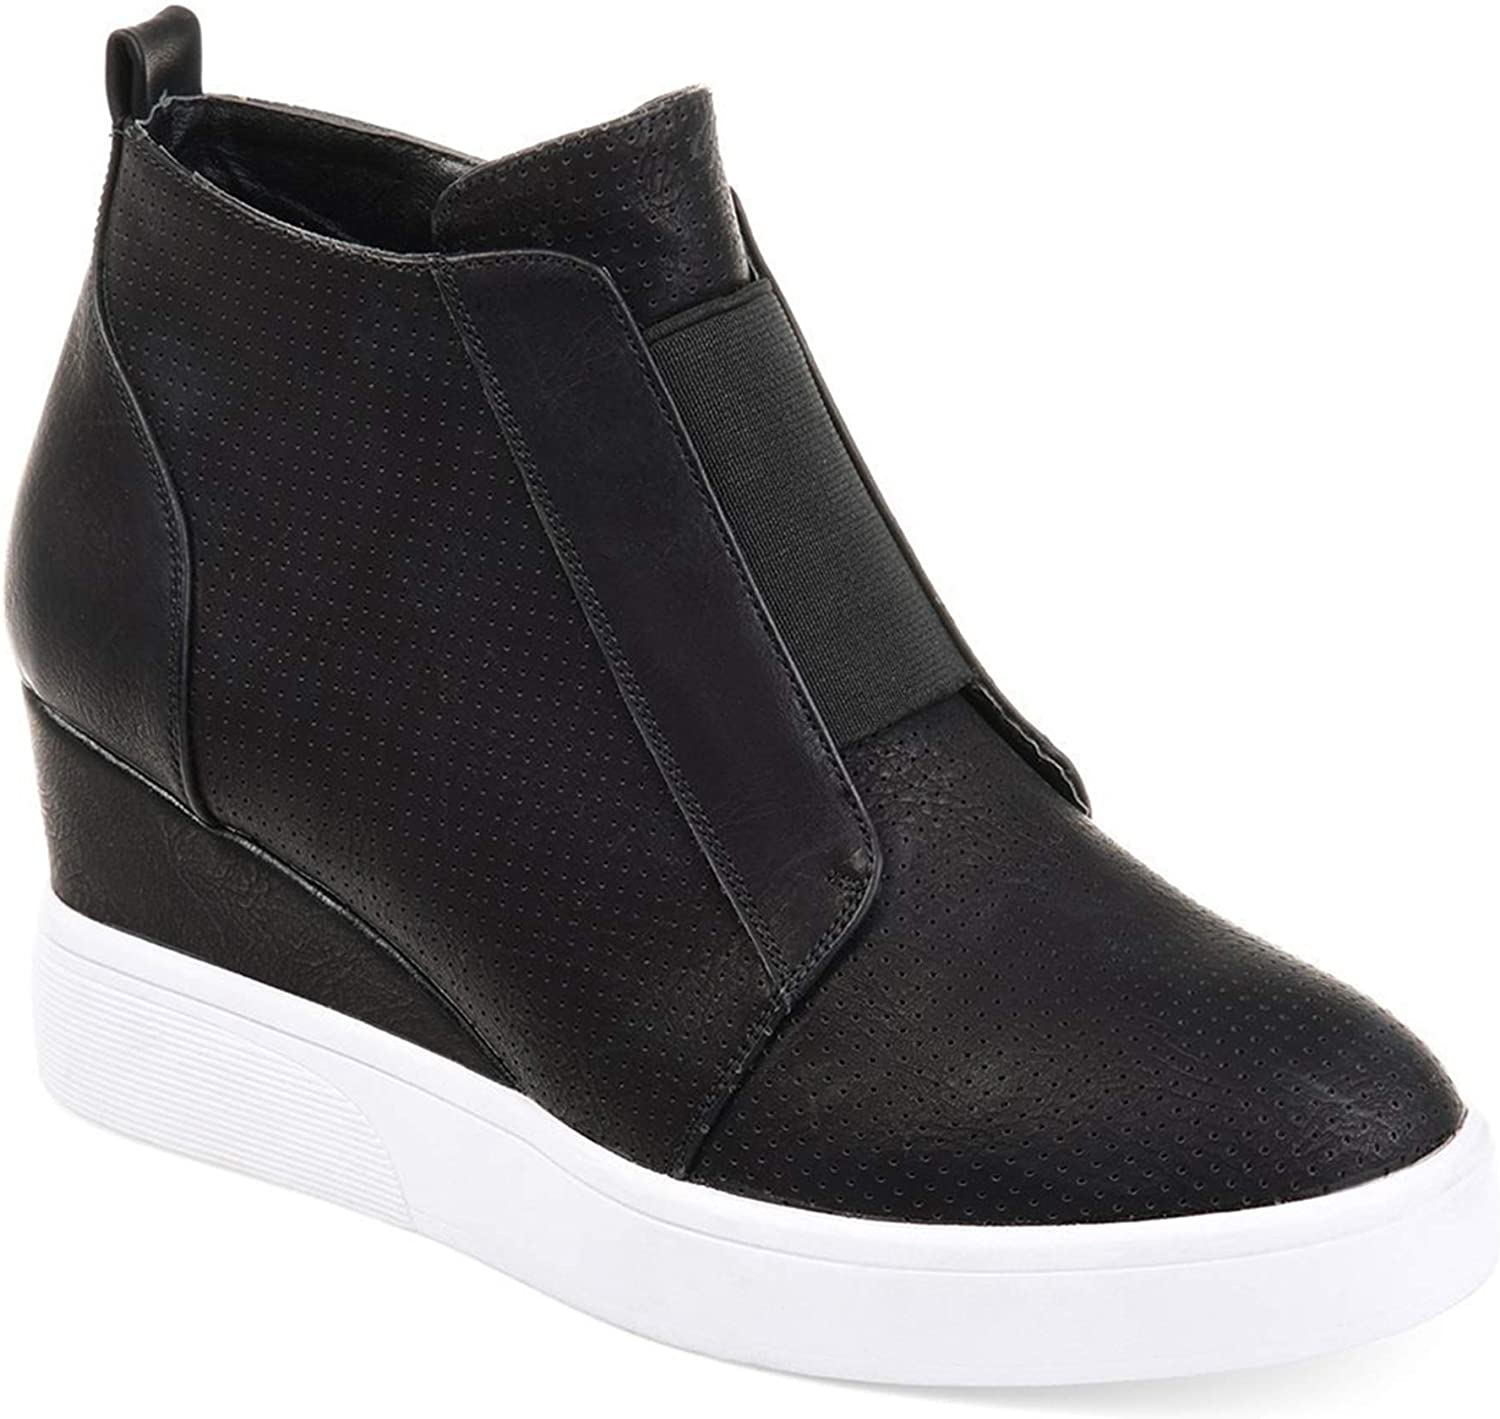 Athlefit Women's Wedge sale 70% OFF Outlet Sneakers Platform